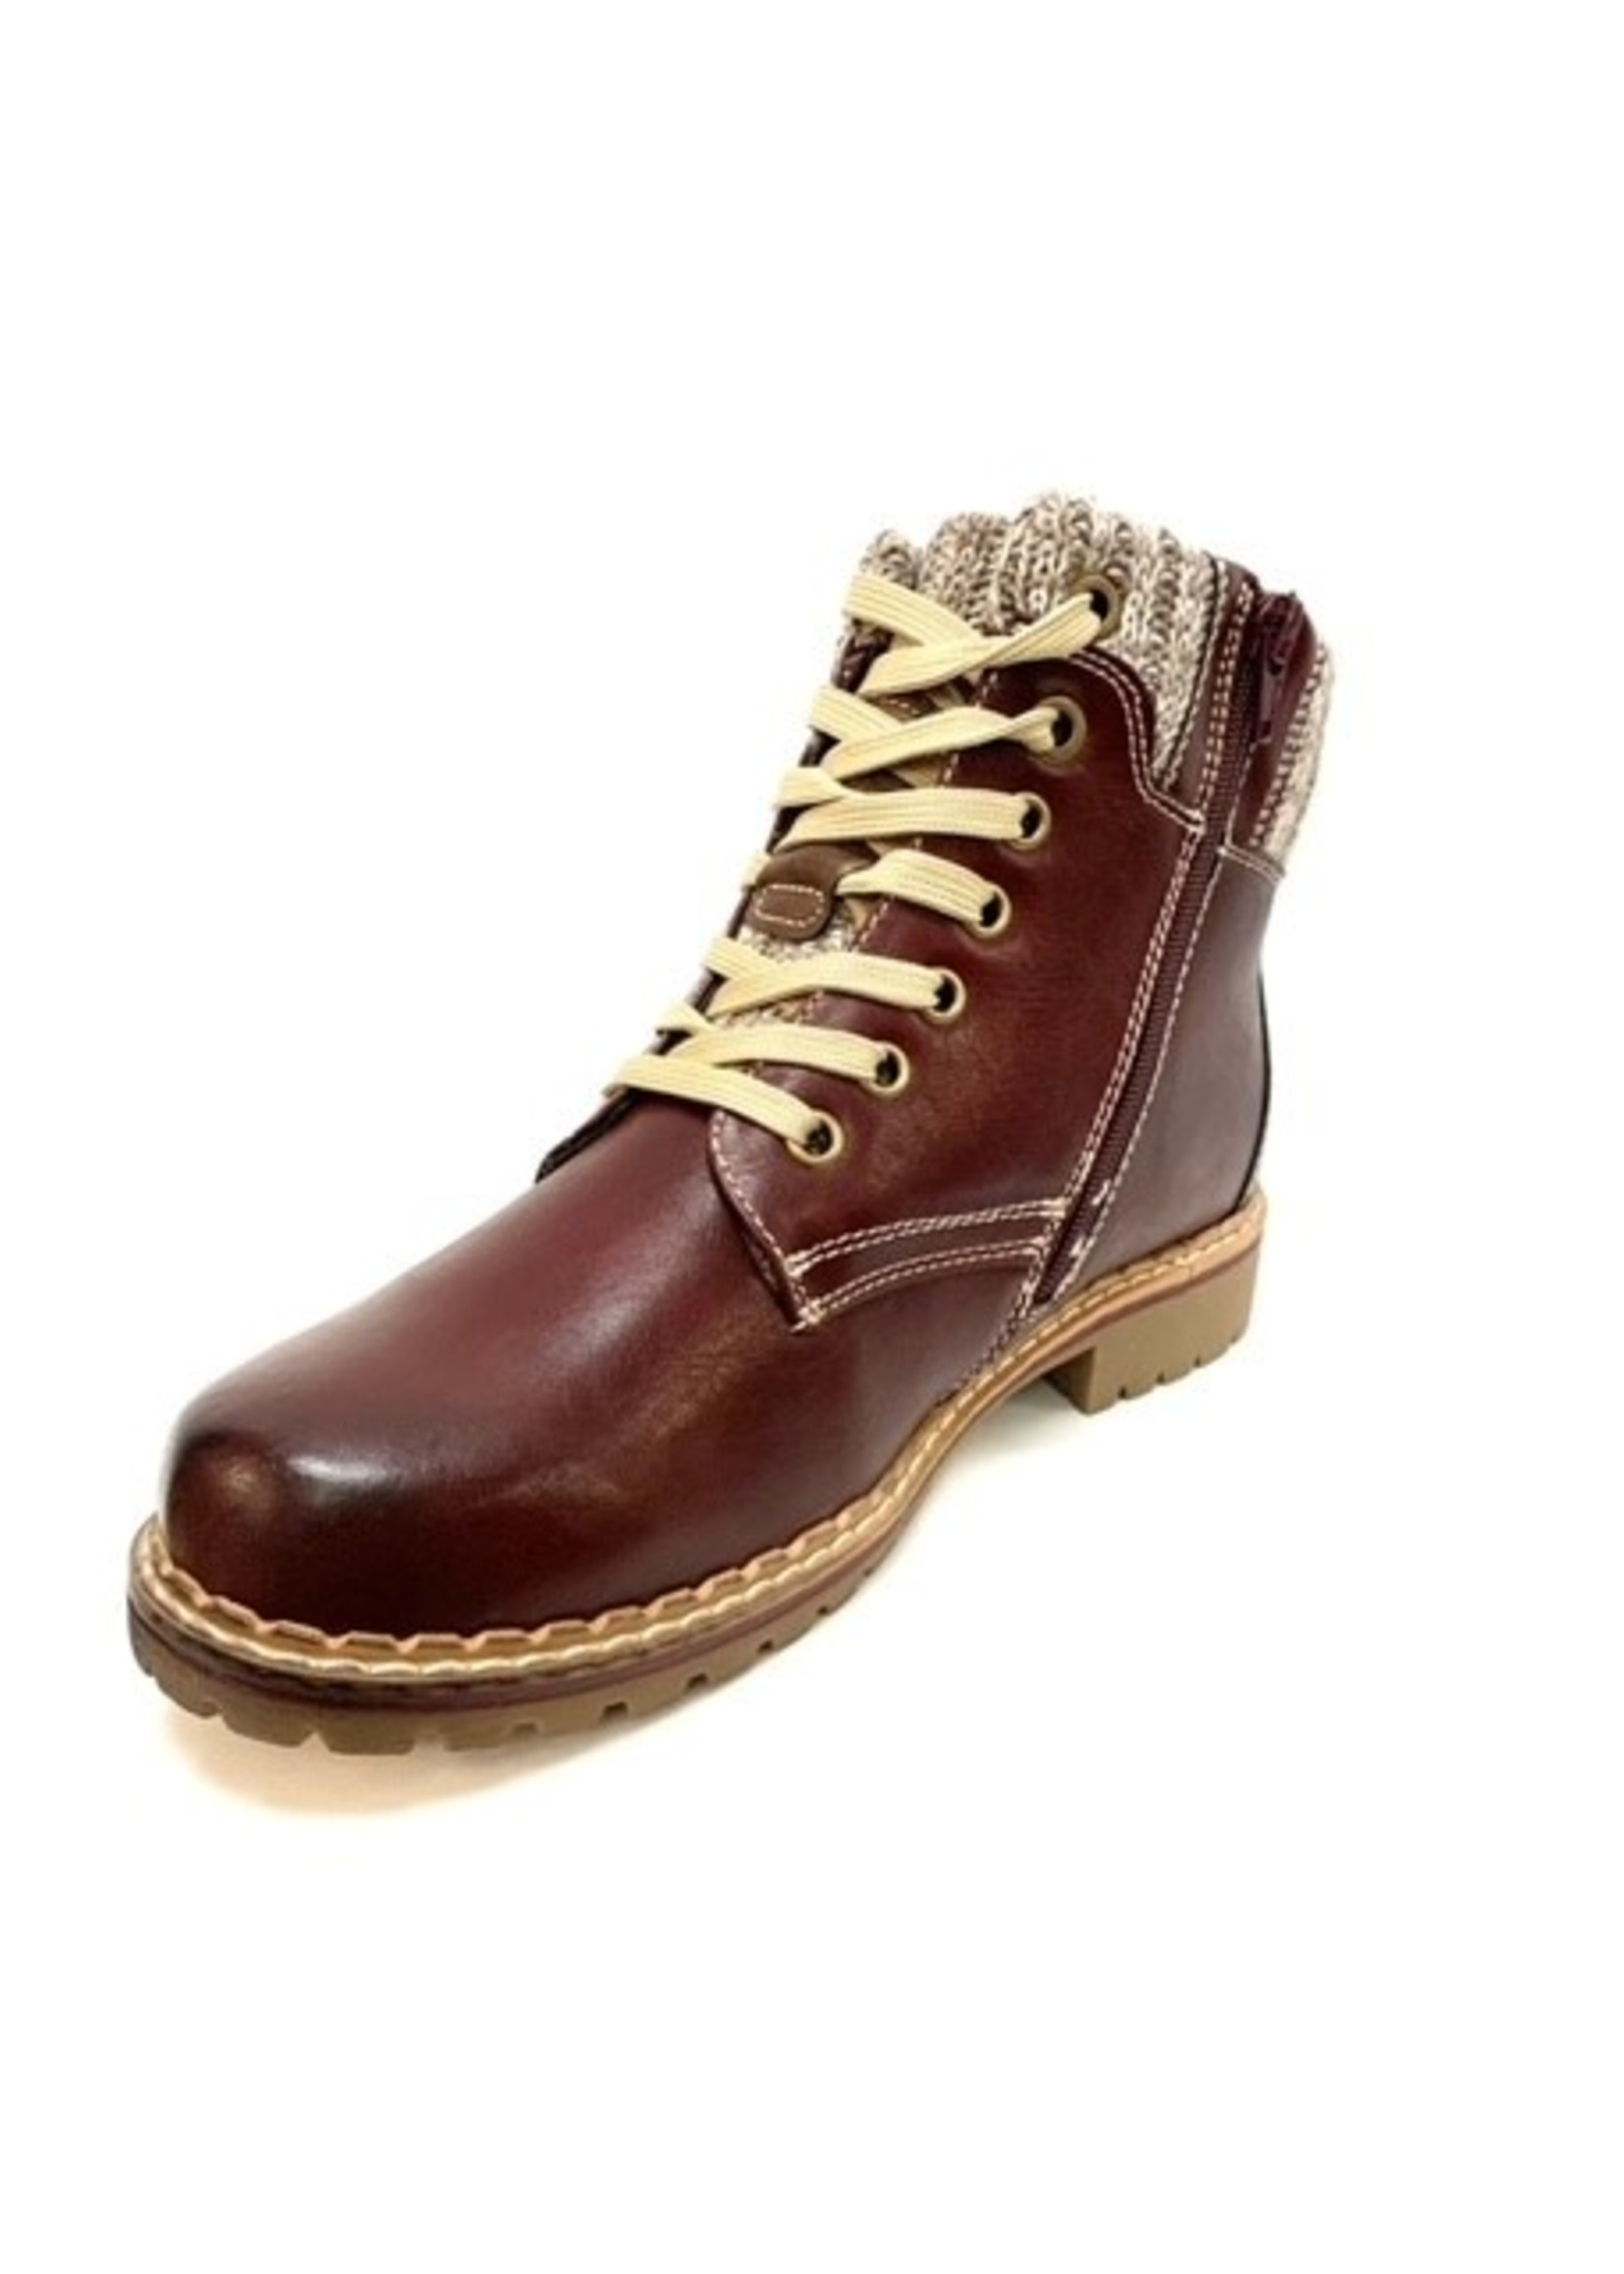 Frontier North short lace up boot with side zip, two colors